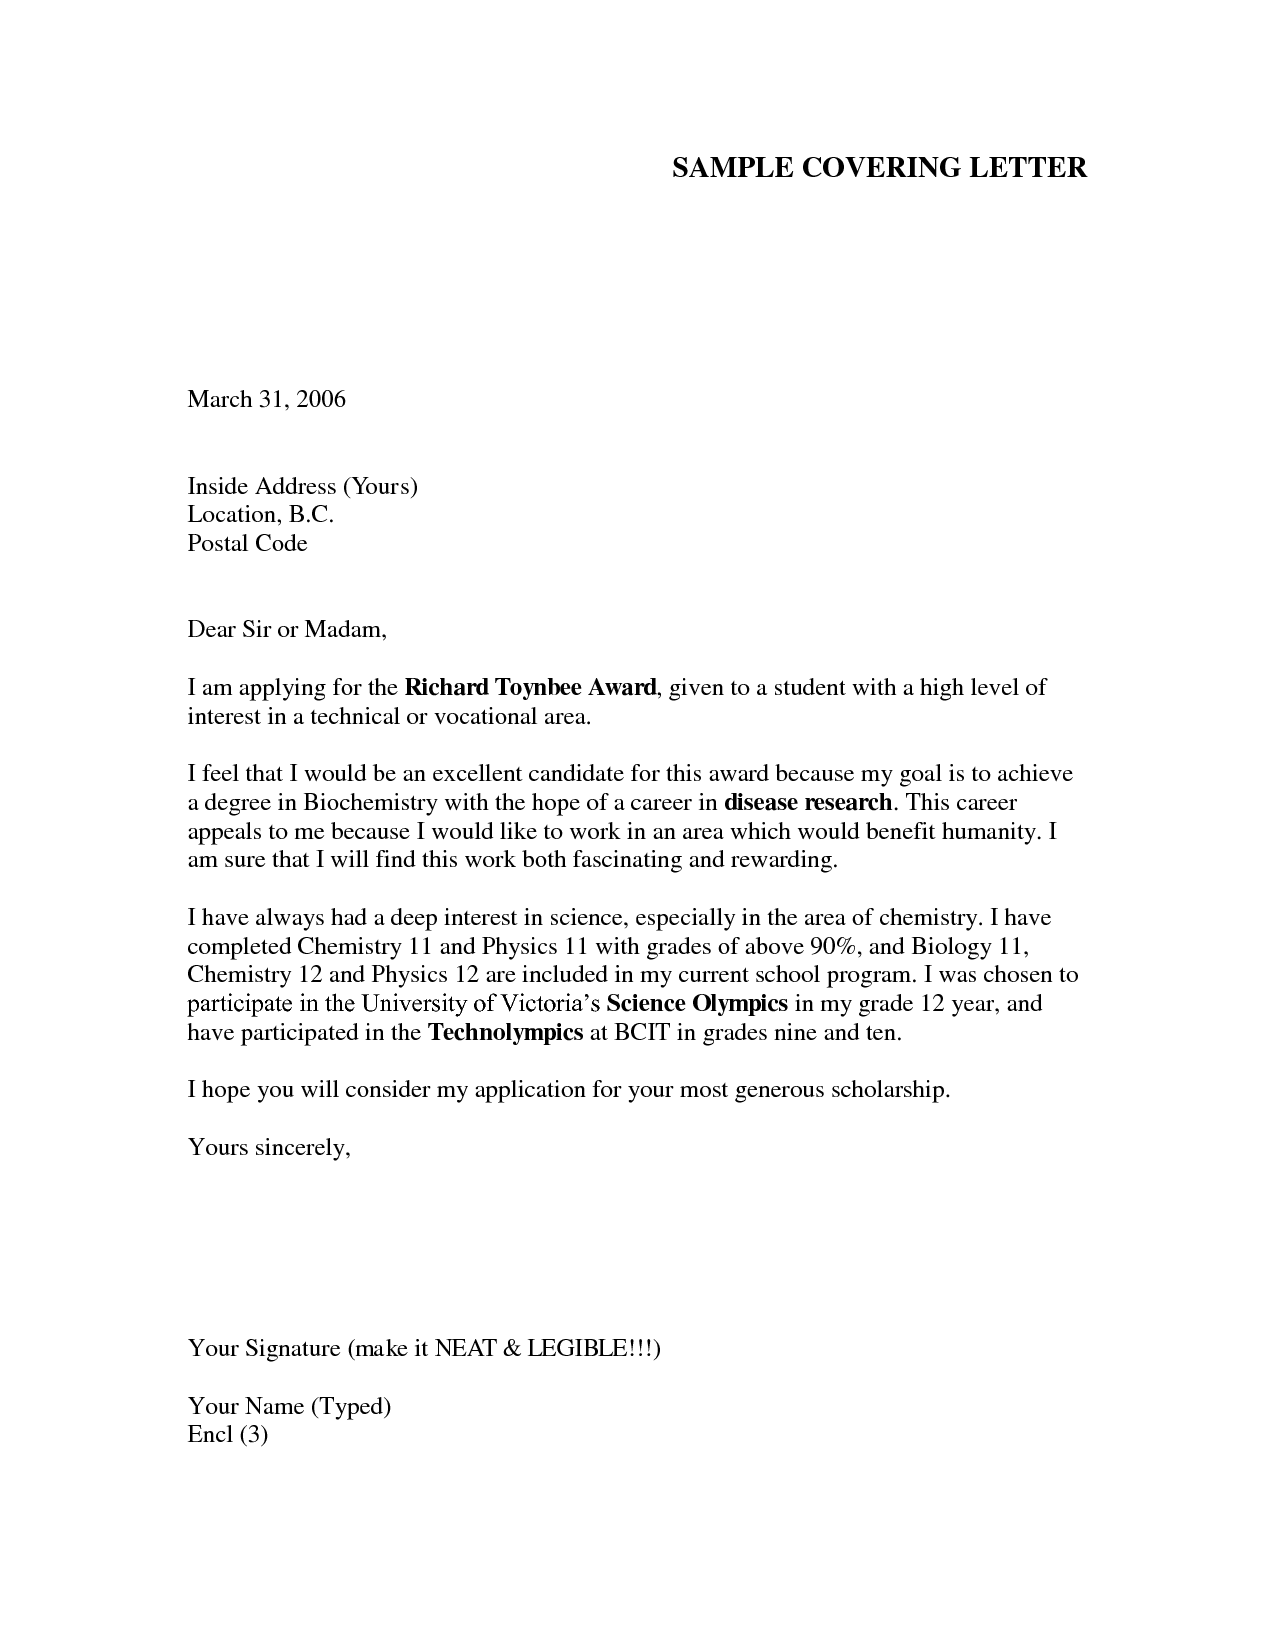 Top 3 Award Winning Cover Letter Templates Resume Format Cover Letter For Resume Job Cover Letter Writing A Cover Letter